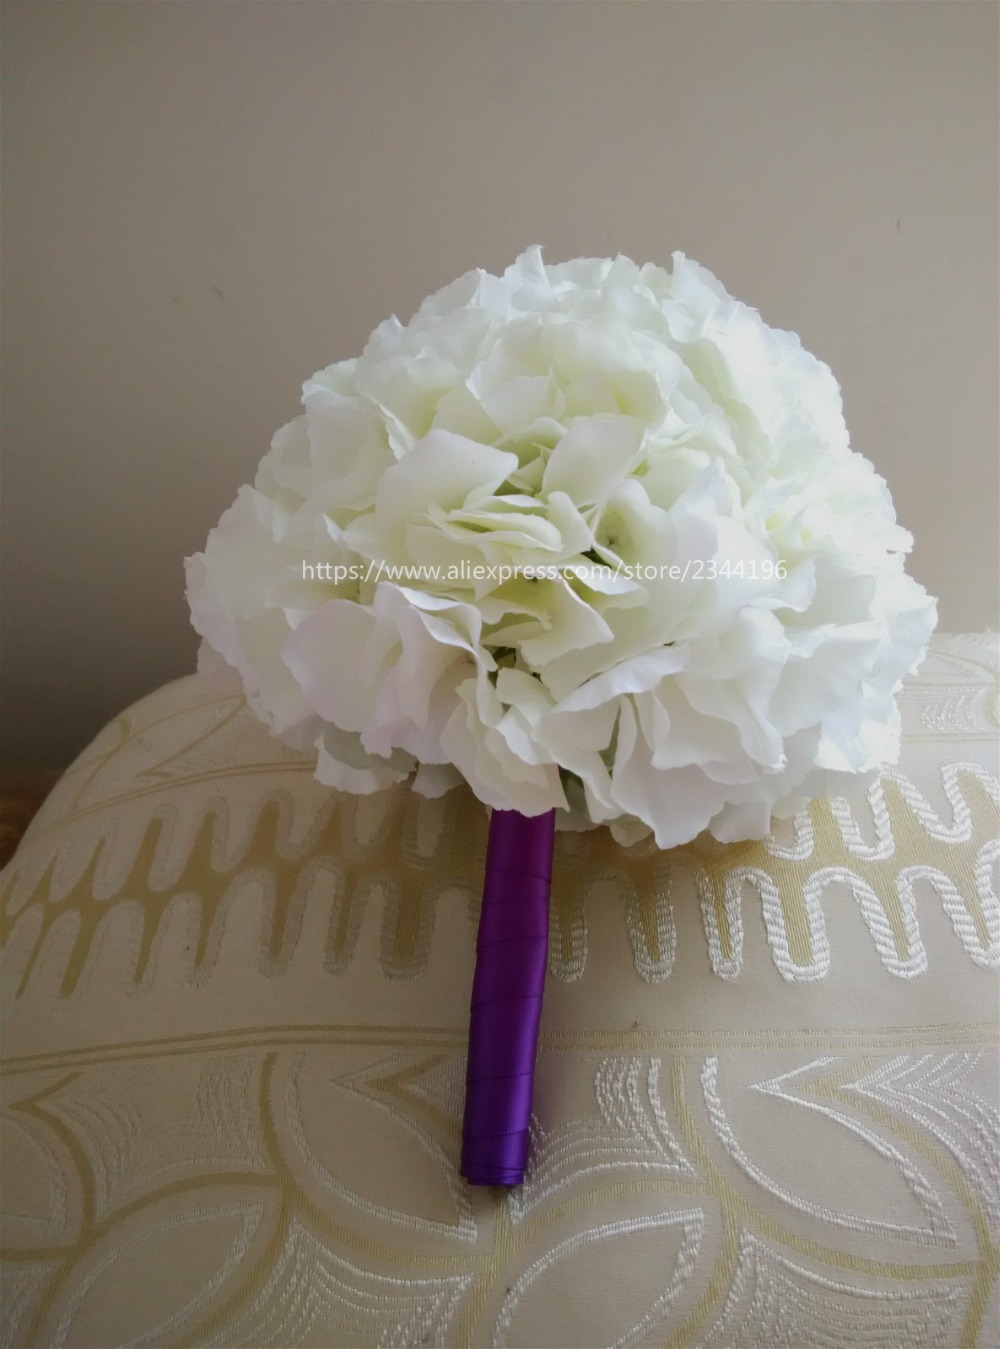 Bride bridesmaid bouquetwhite hydrangea bouquet with purple ribbon bride bridesmaid bouquetwhite hydrangea bouquet with purple ribbon wedding table centerpieces flowershome decoration in artificial dried flowers from izmirmasajfo